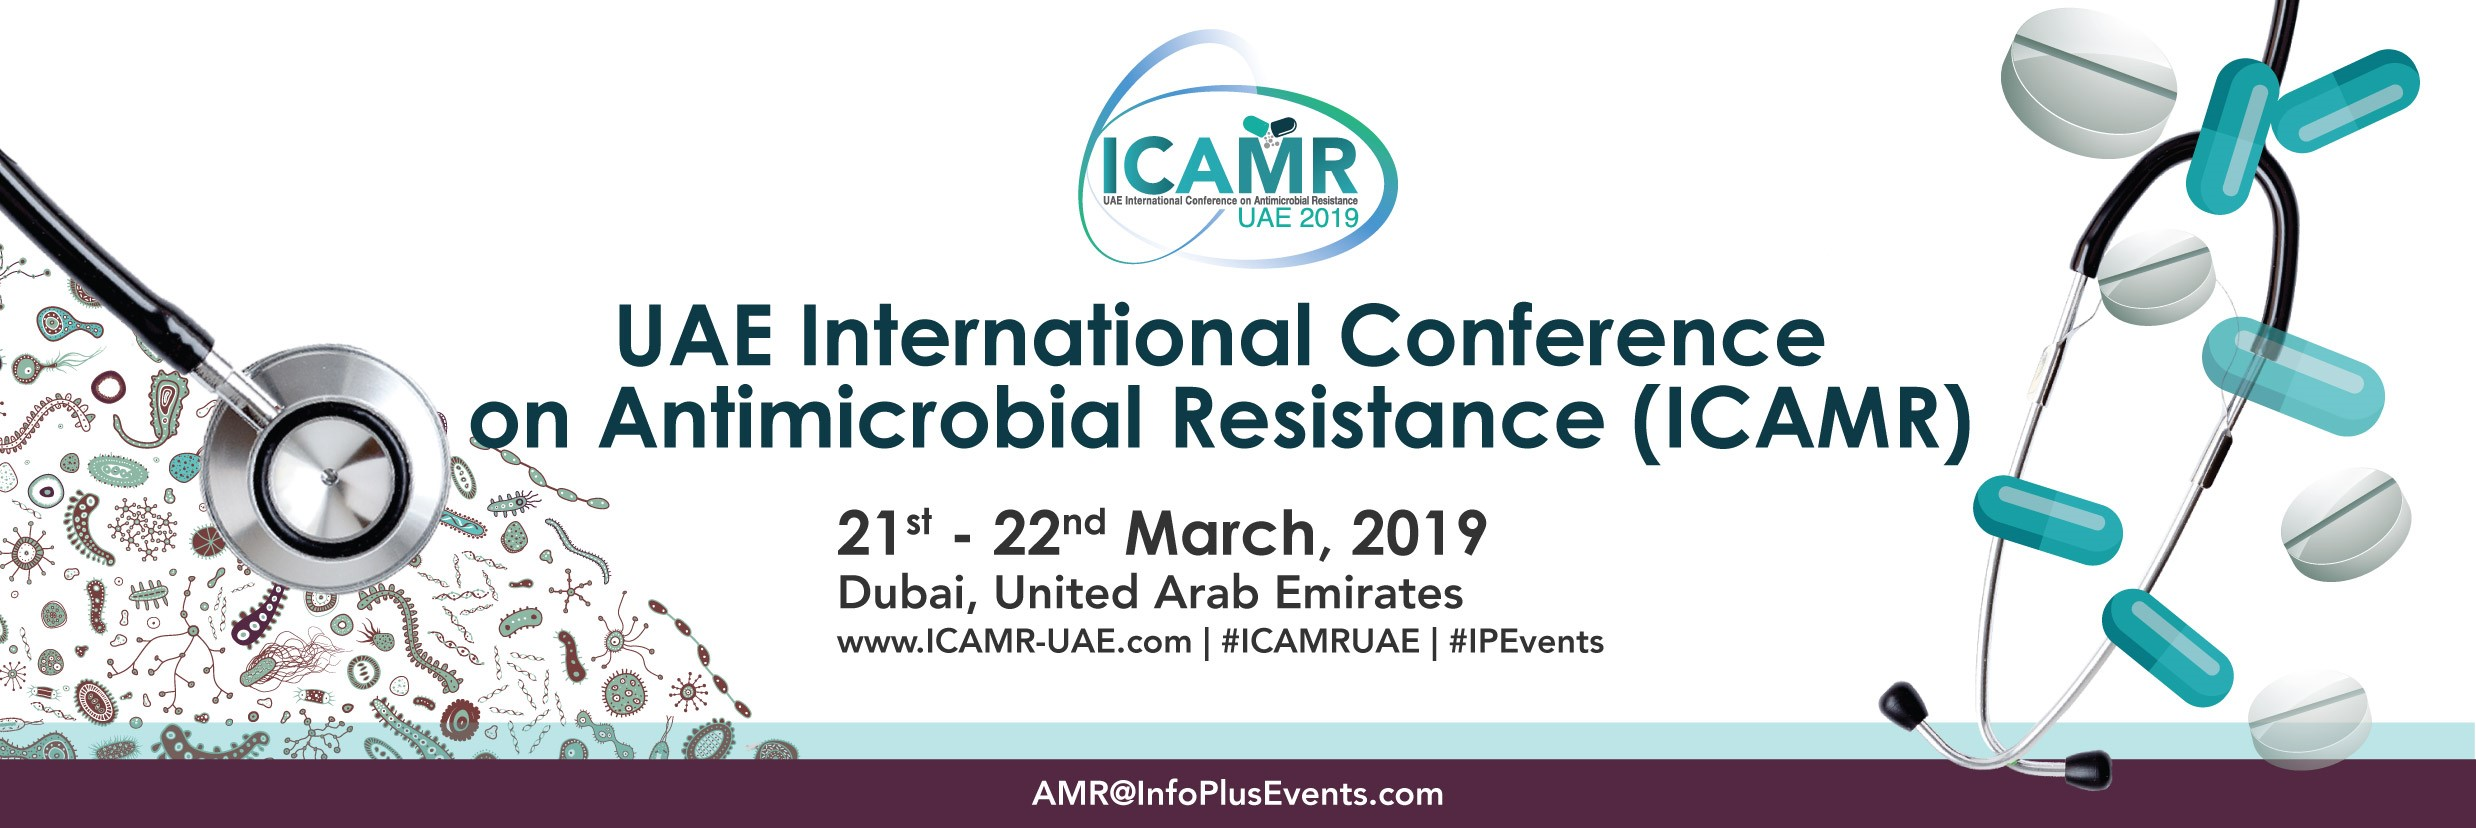 UAE International Conference on Antimicrobial Resistance (ICAMR) 21st & 22nd March,2019